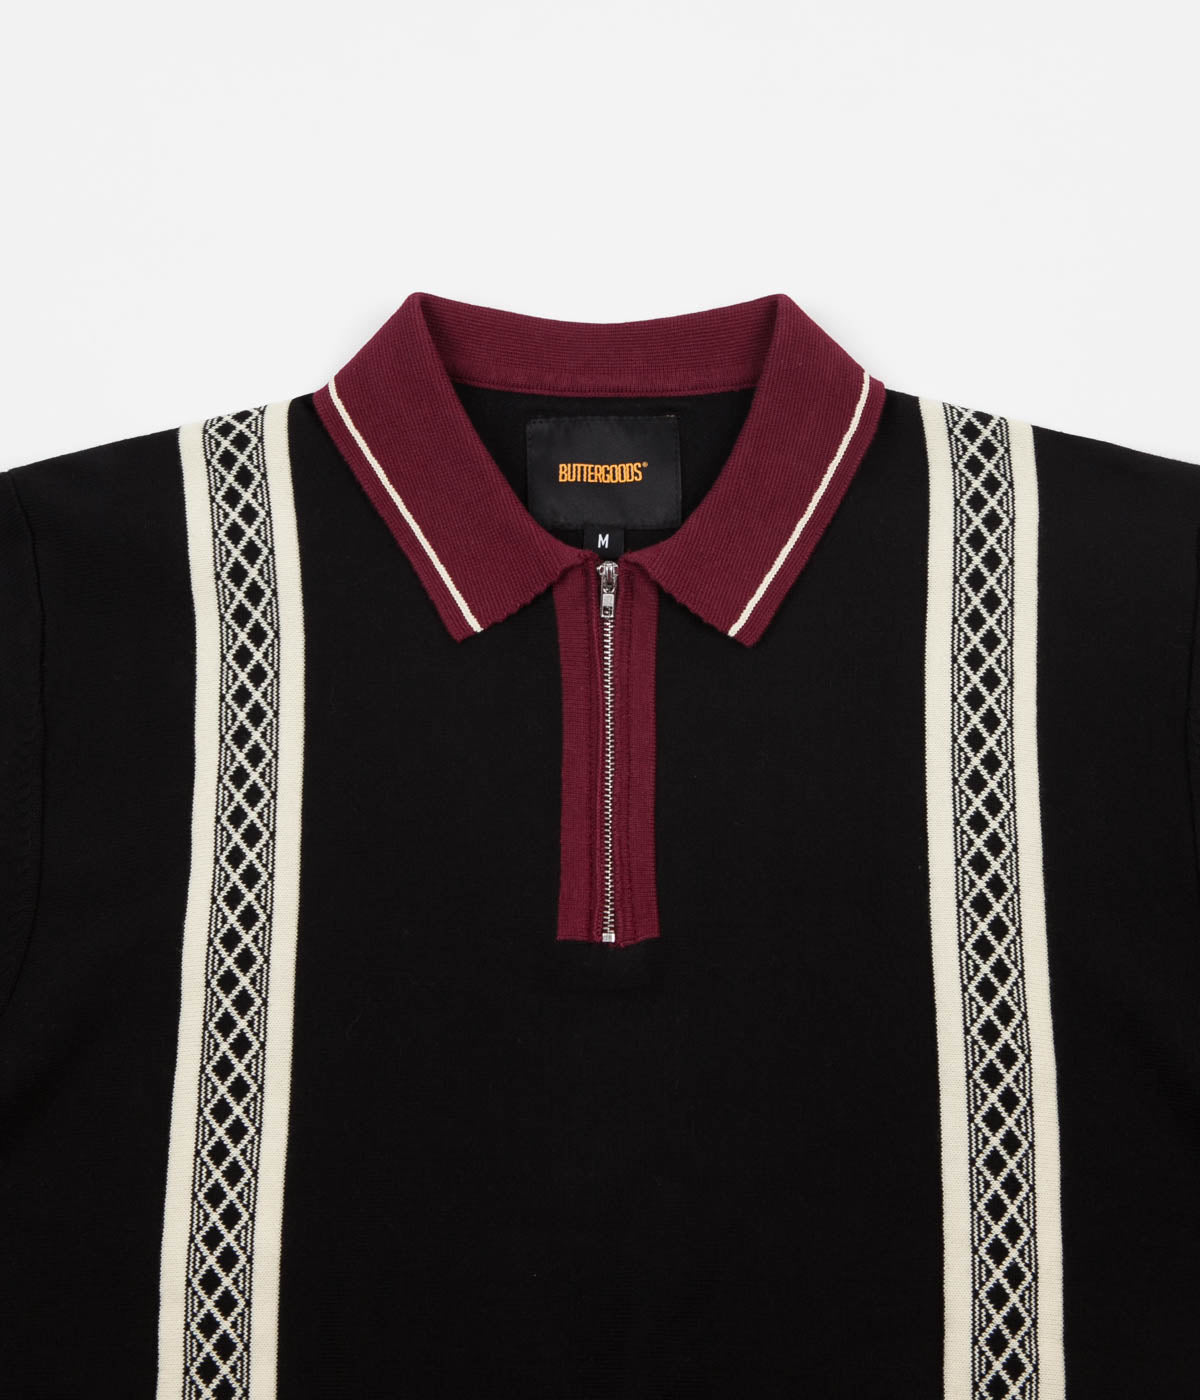 Butter Goods Newark Zip Polo Shirt - Black